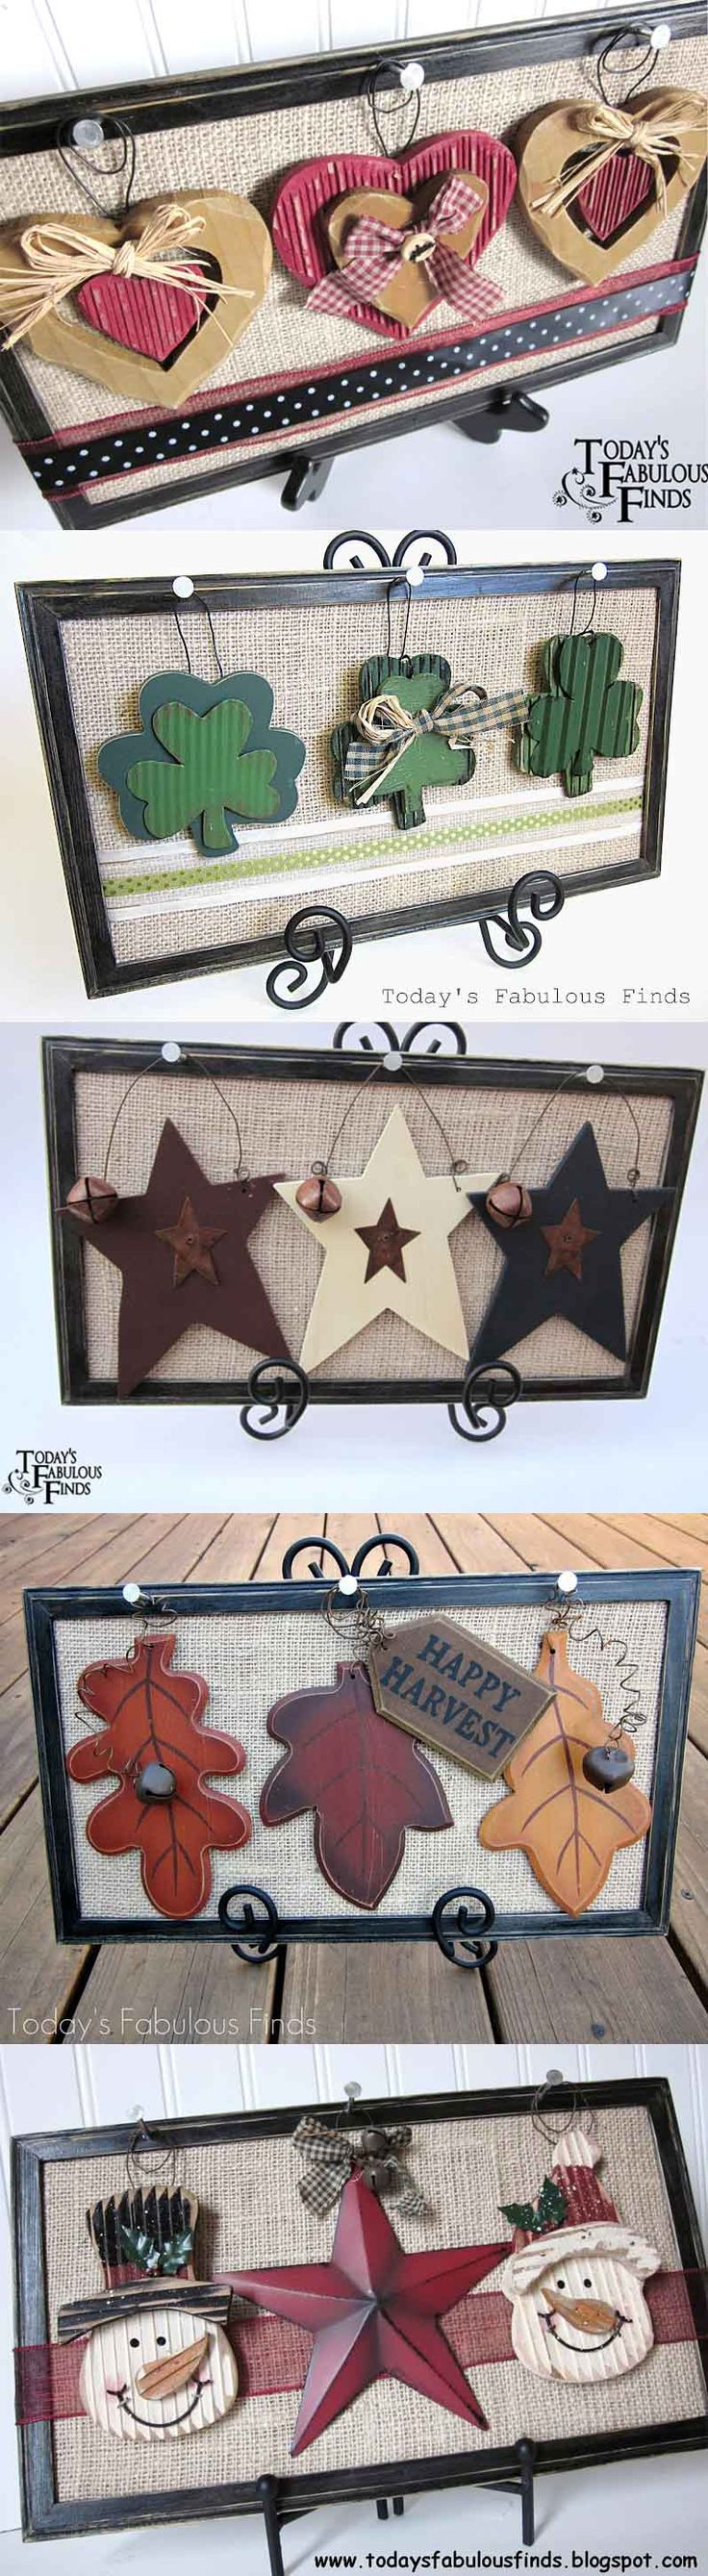 One Frame For Every Season, Changeable & Multiple Seasons Crafts (tutorial here: todaysfabulousfin...)